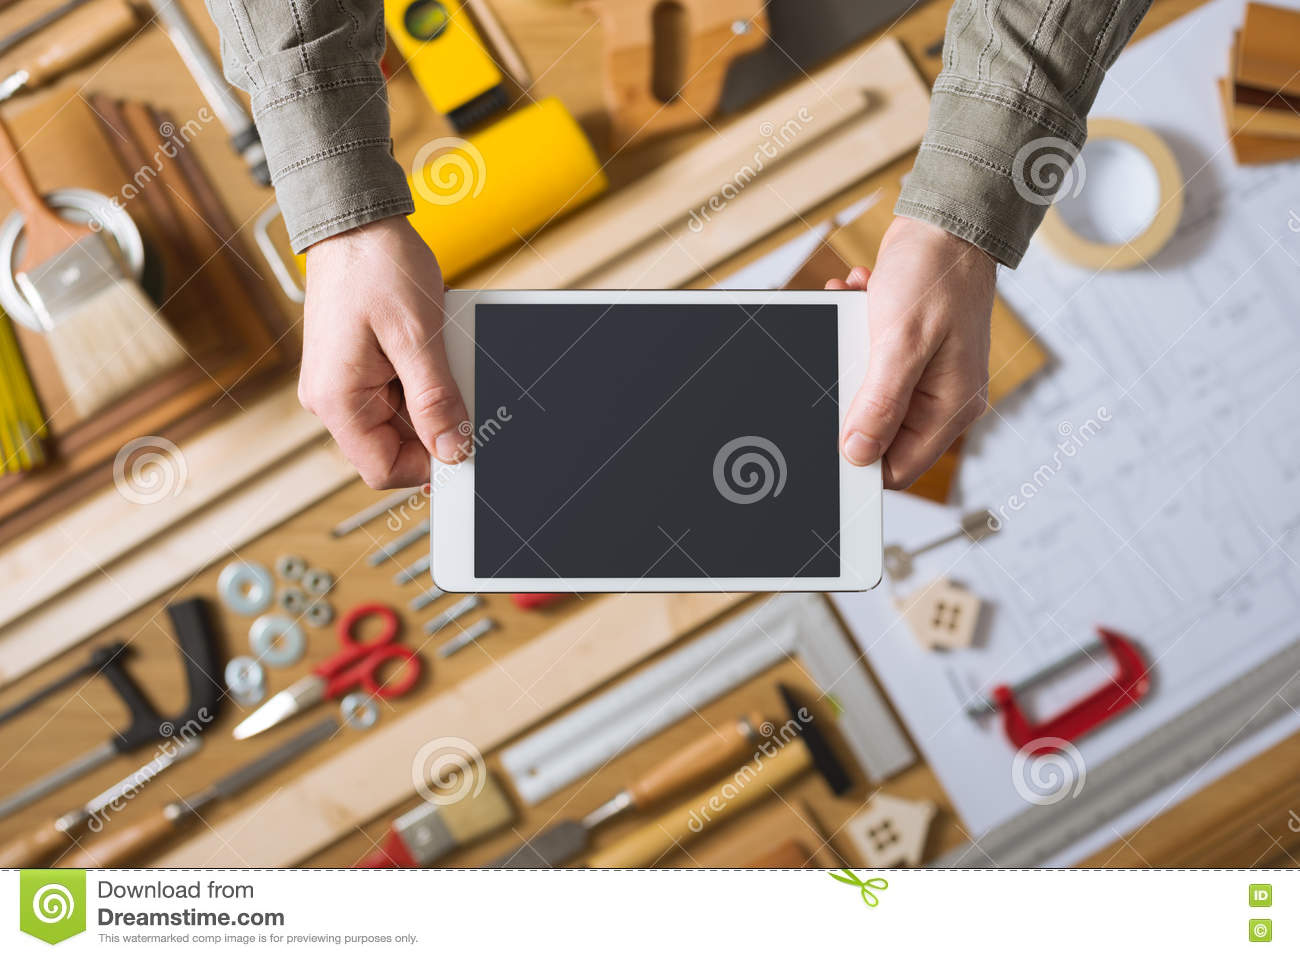 Home Remodeling Apps on health apps, automotive apps, business apps, accounting apps, clothing apps, design apps, cooking apps, security apps,